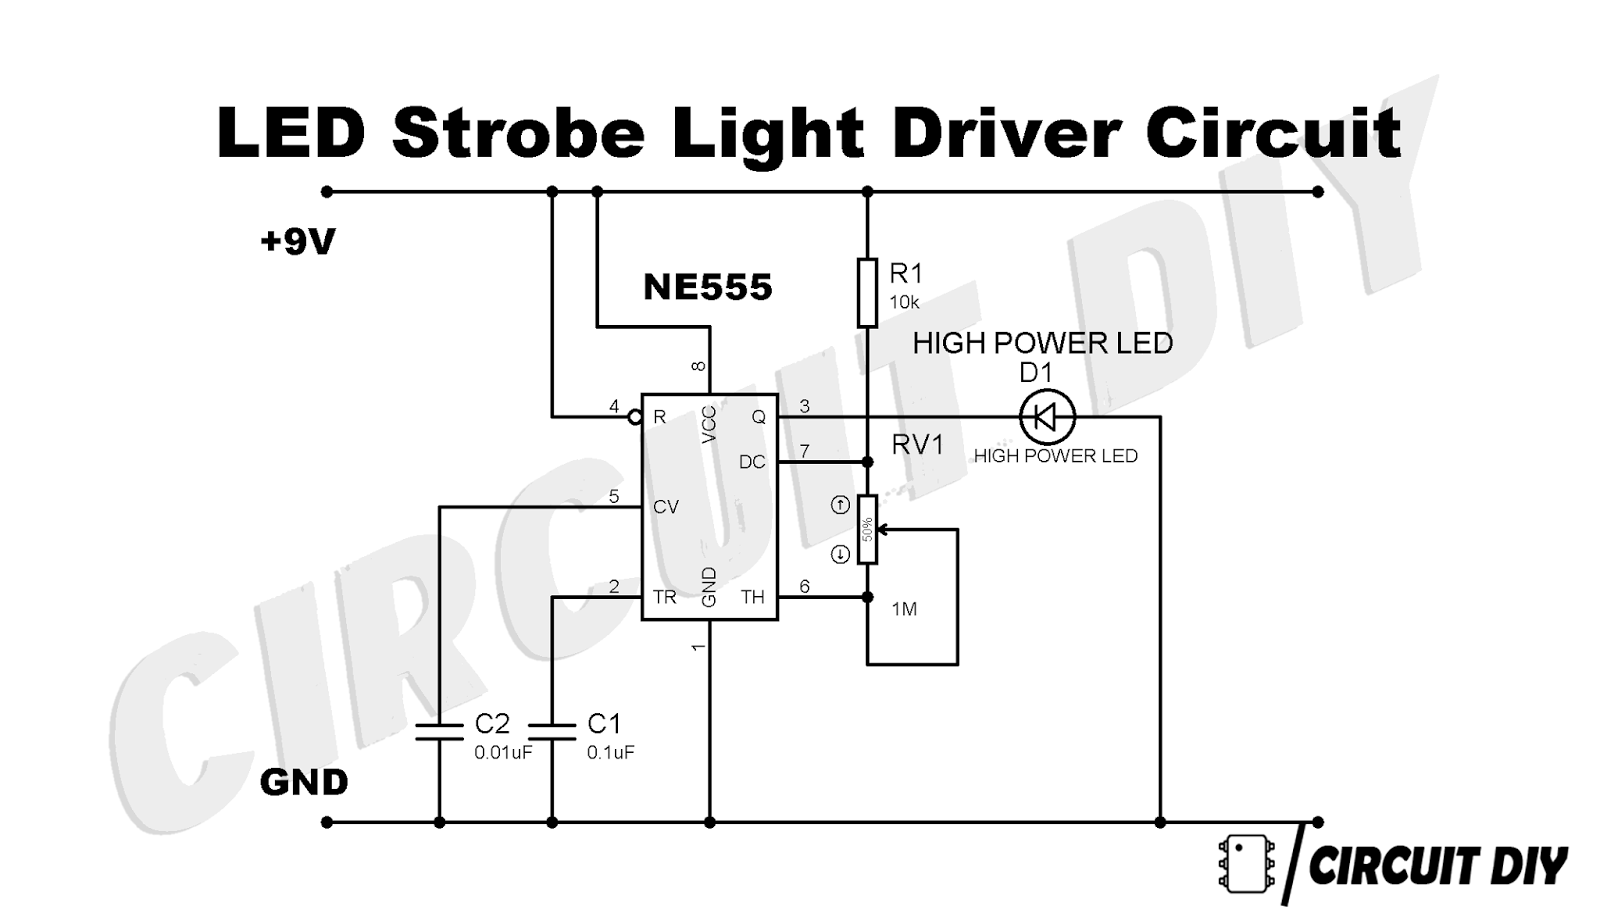 hight resolution of led strobe schematic wiring diagram val strobe light circuit diagram wiring diagram val led strobe circuit